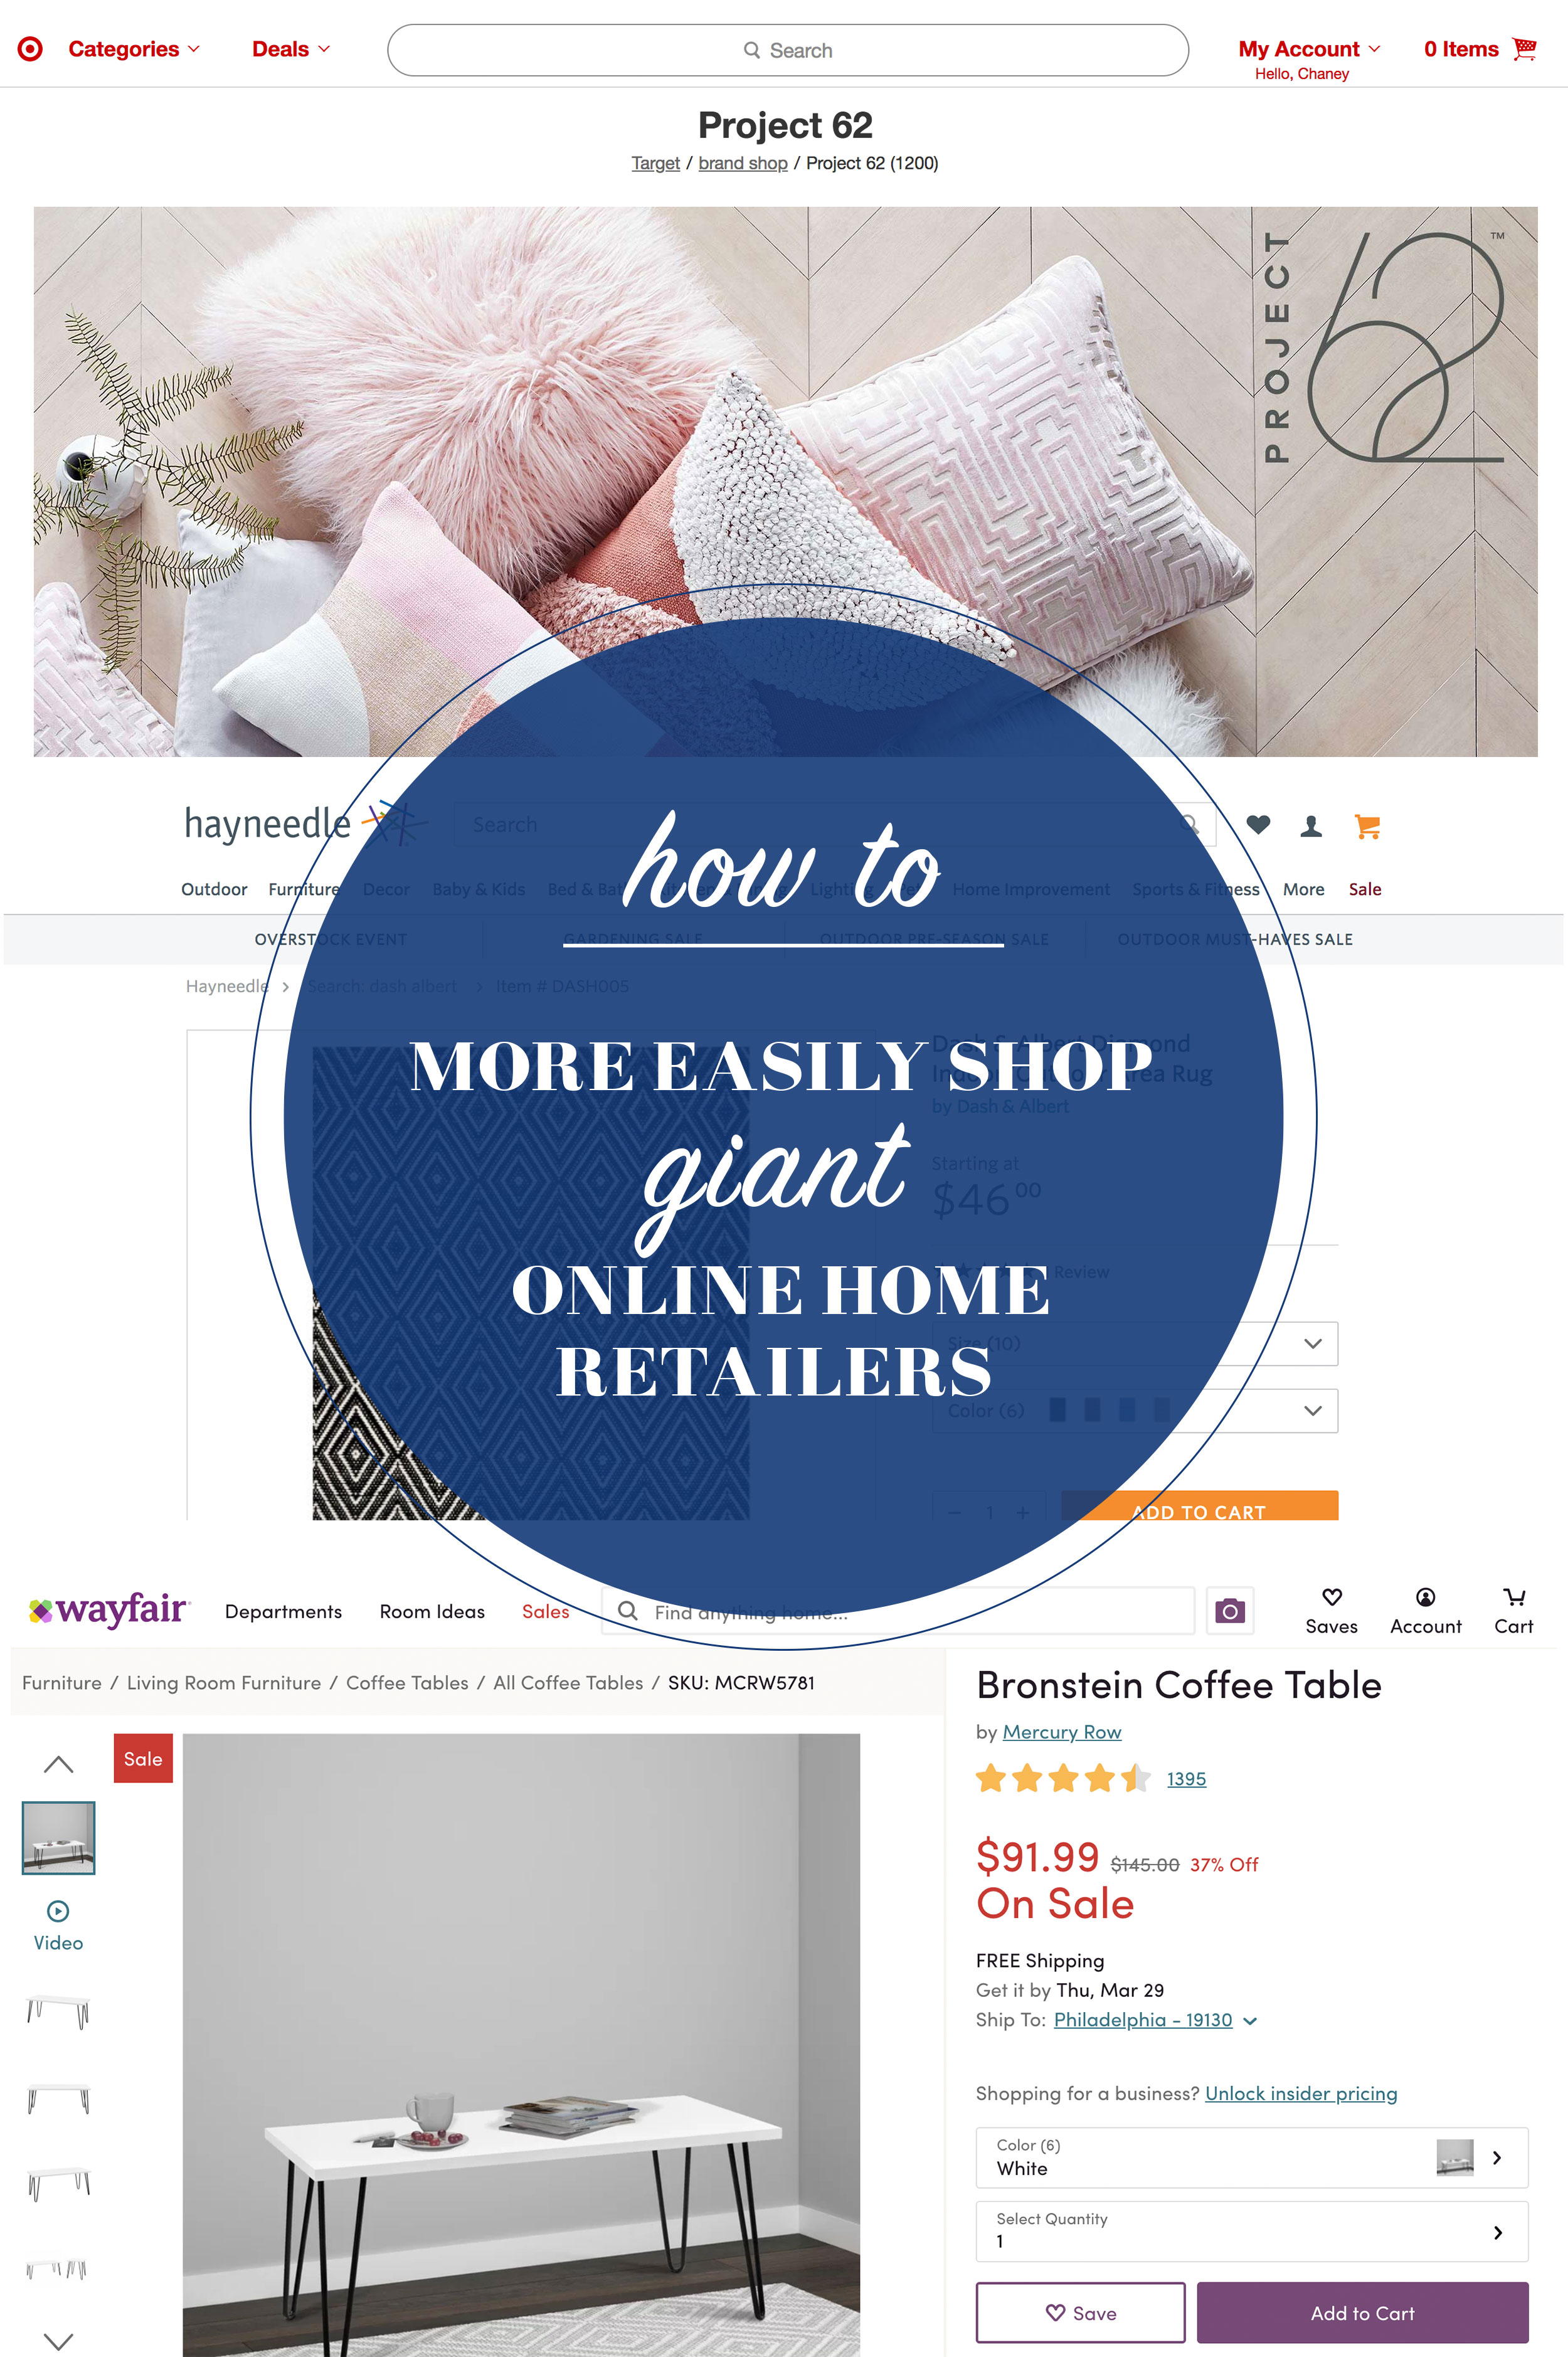 Want to know how to prevent overwhelm when you're shopping at those giant home retailers like Wayfair and Target? Head to this blog post for a quick tip!